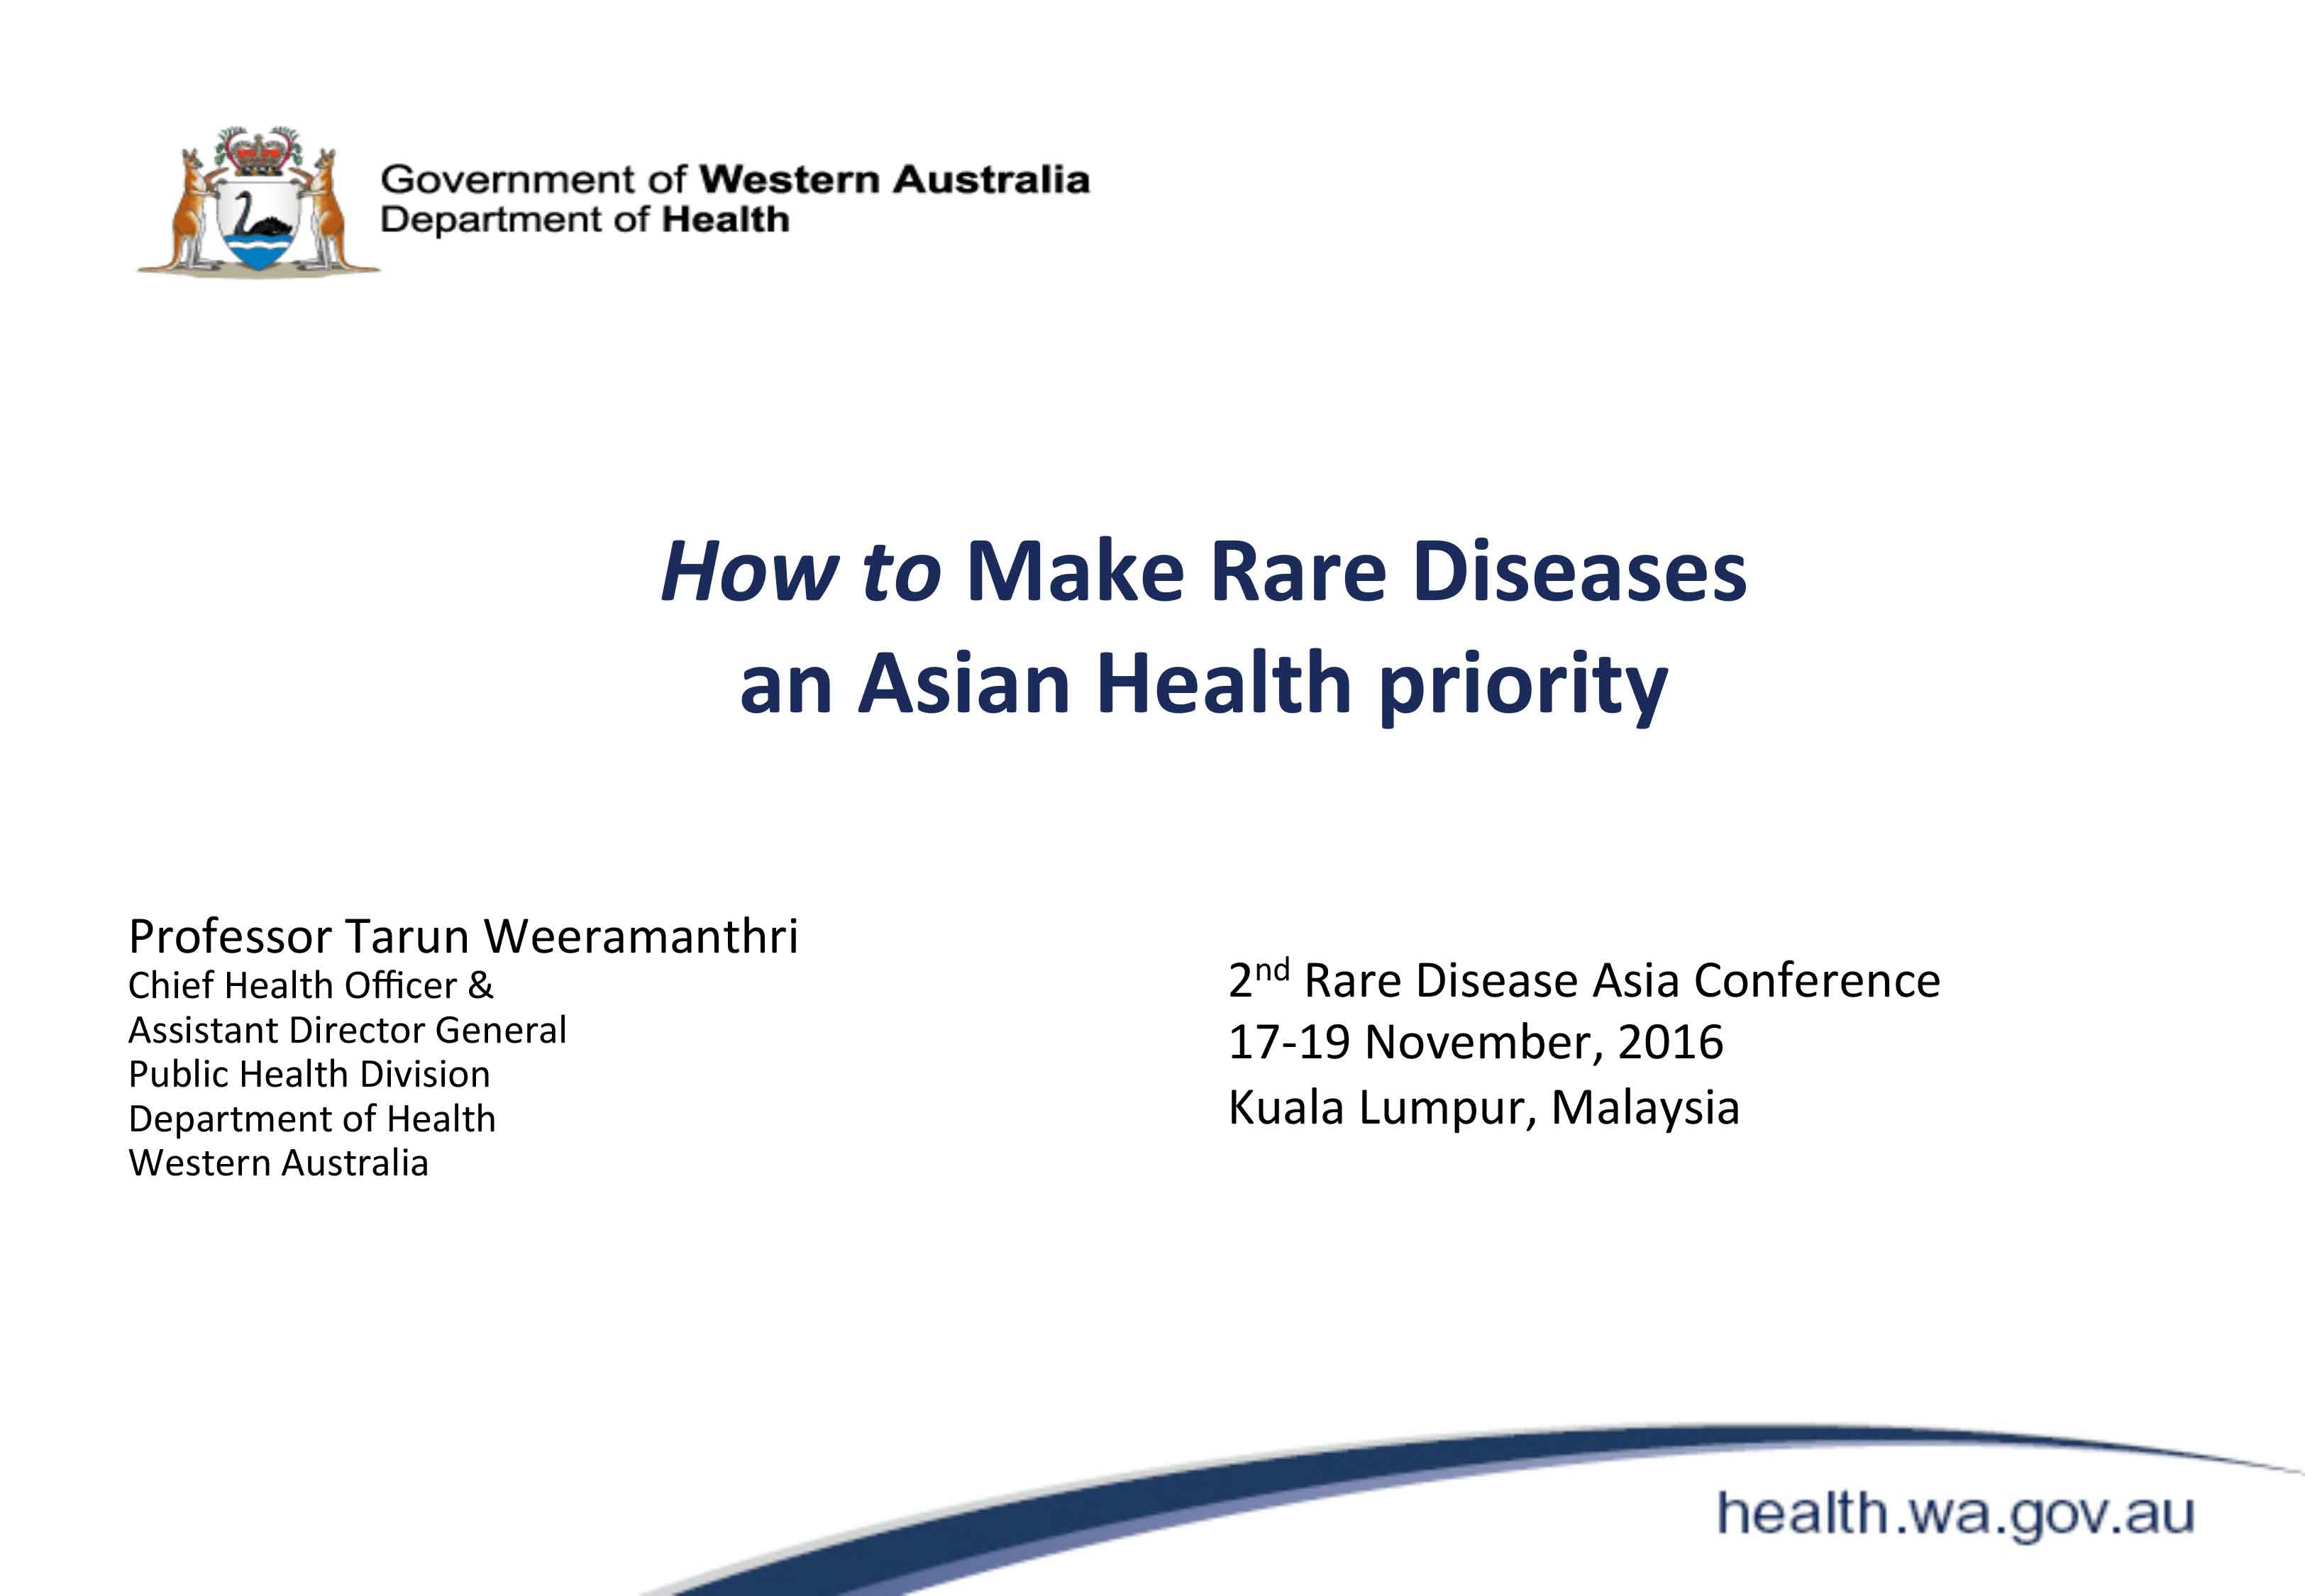 Prof Tarun Weeramanthri (Chief Health Officer, Department of Health, Western Australia) - Keynote-Making Rare Diseases an Asian Health Priority